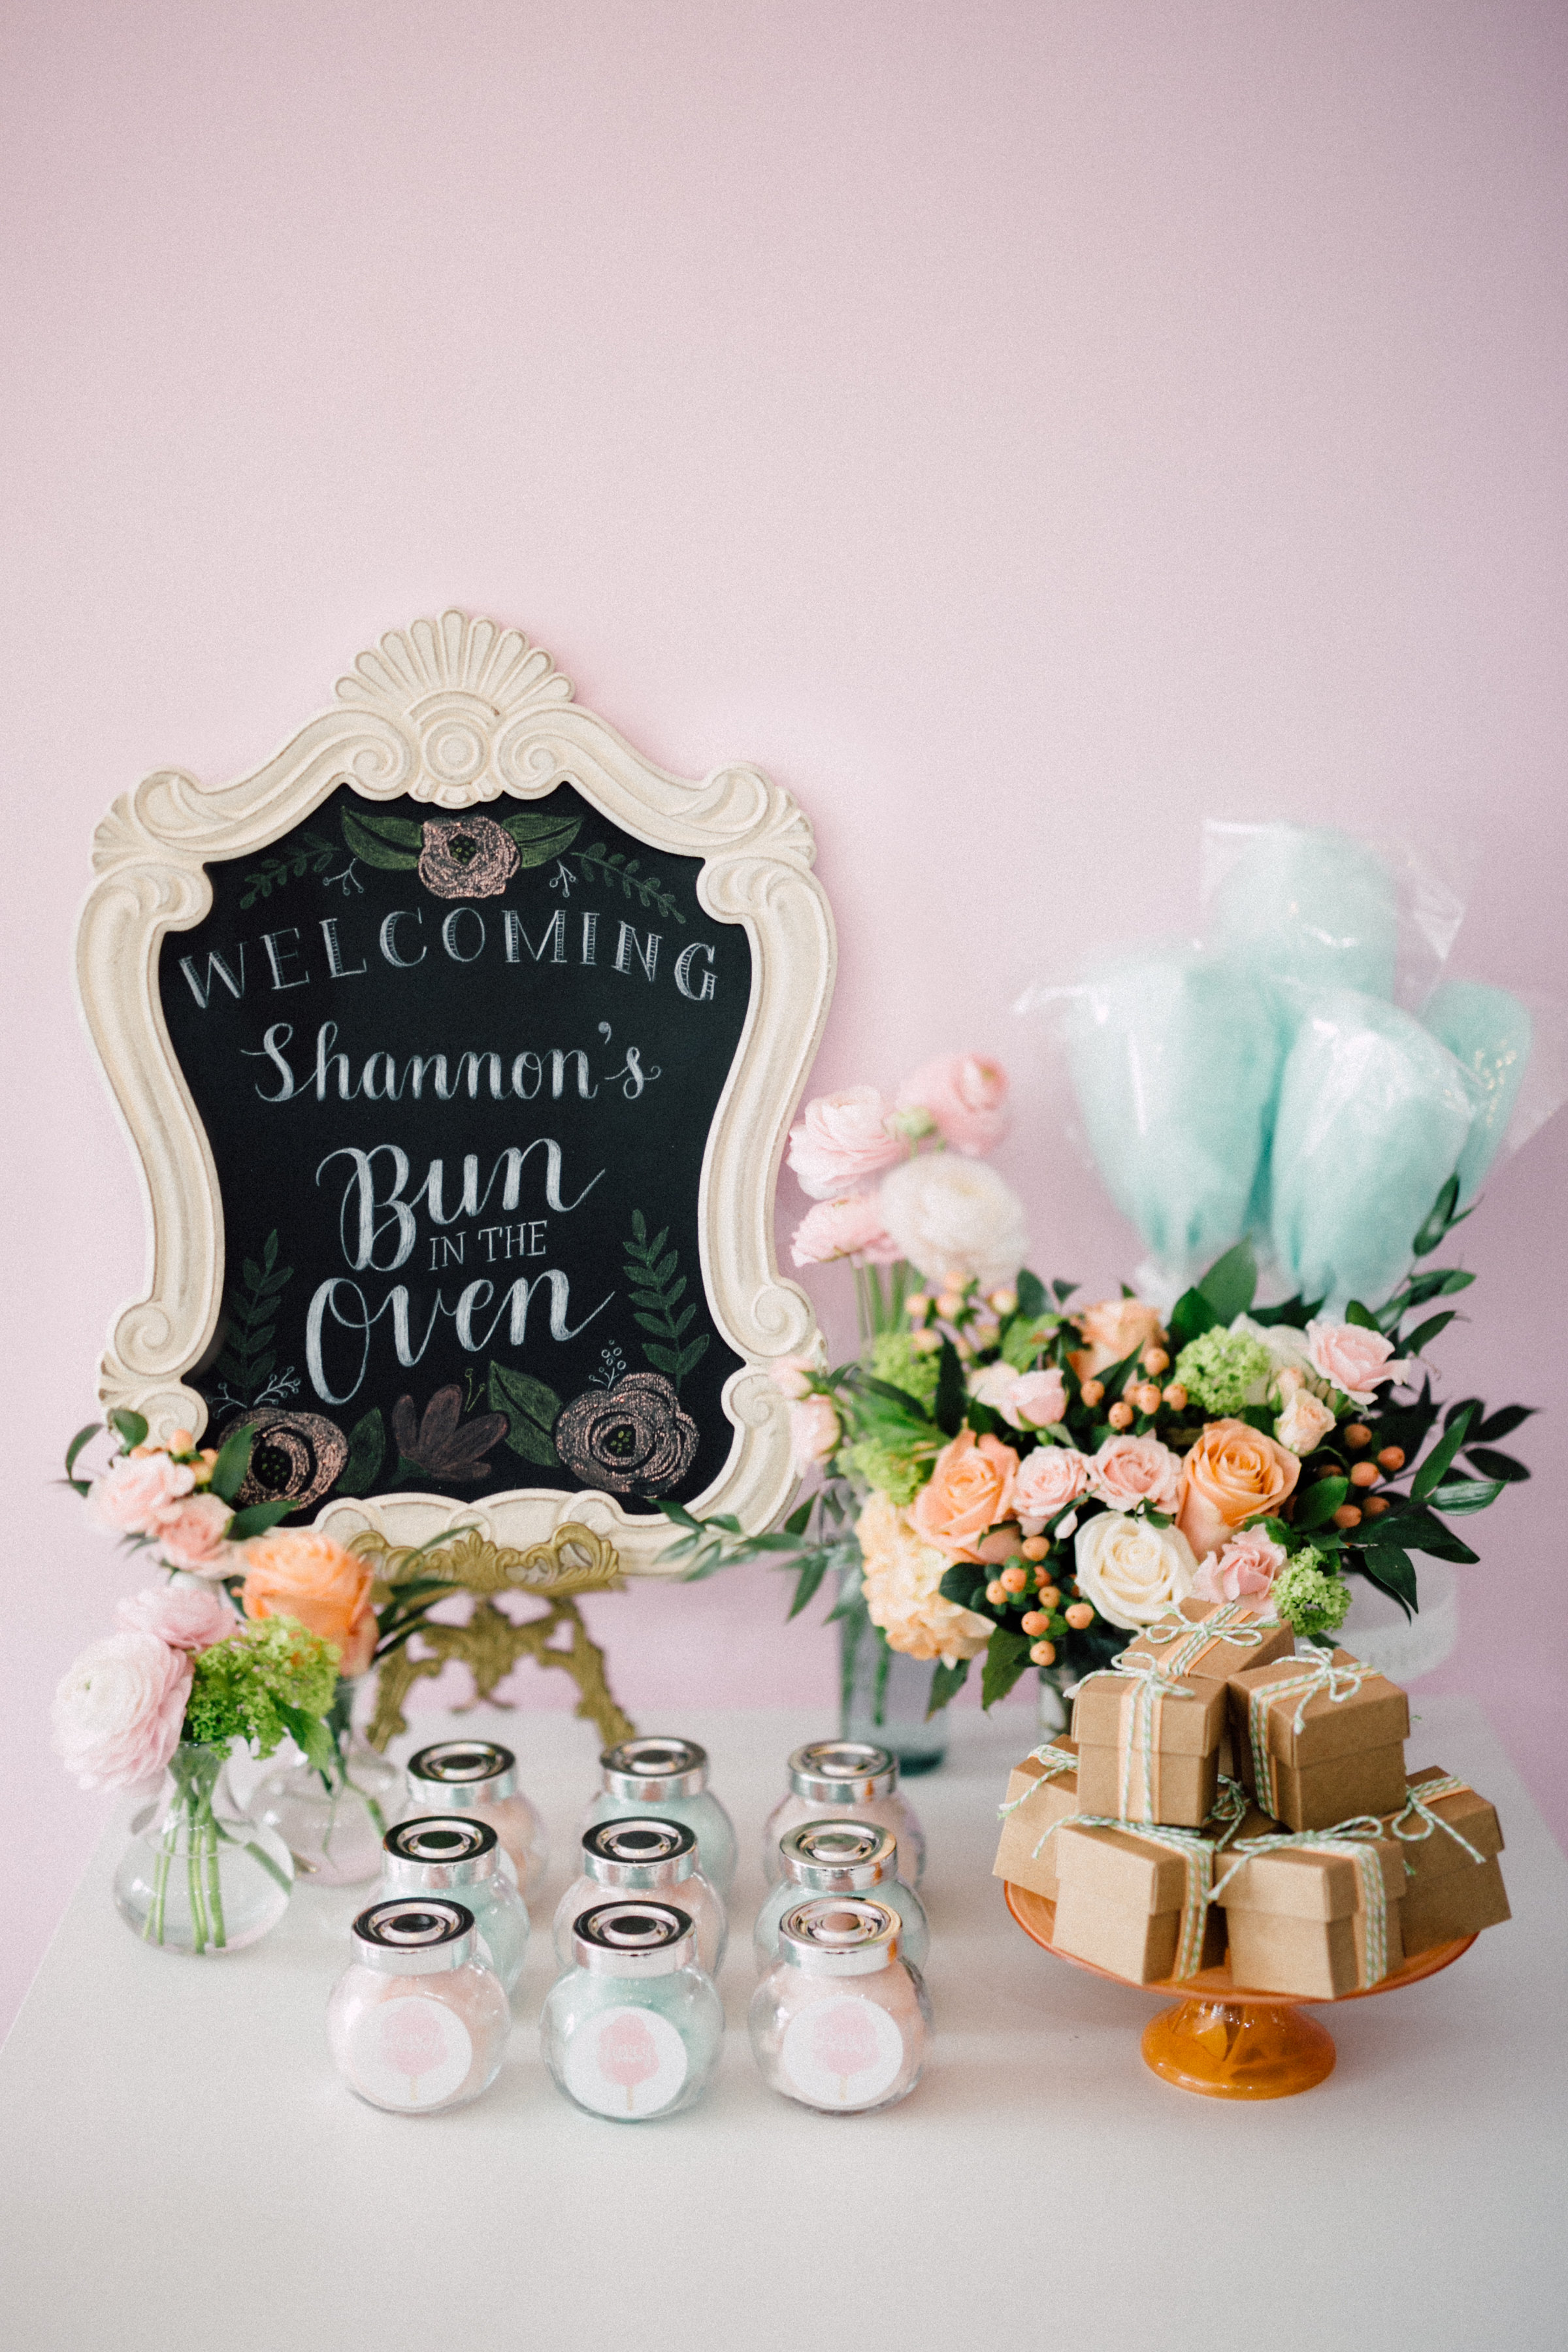 August In Bloom - Welcome table - Bun In The Oven Baby Shower (Style Me Pretty & SMP Living)